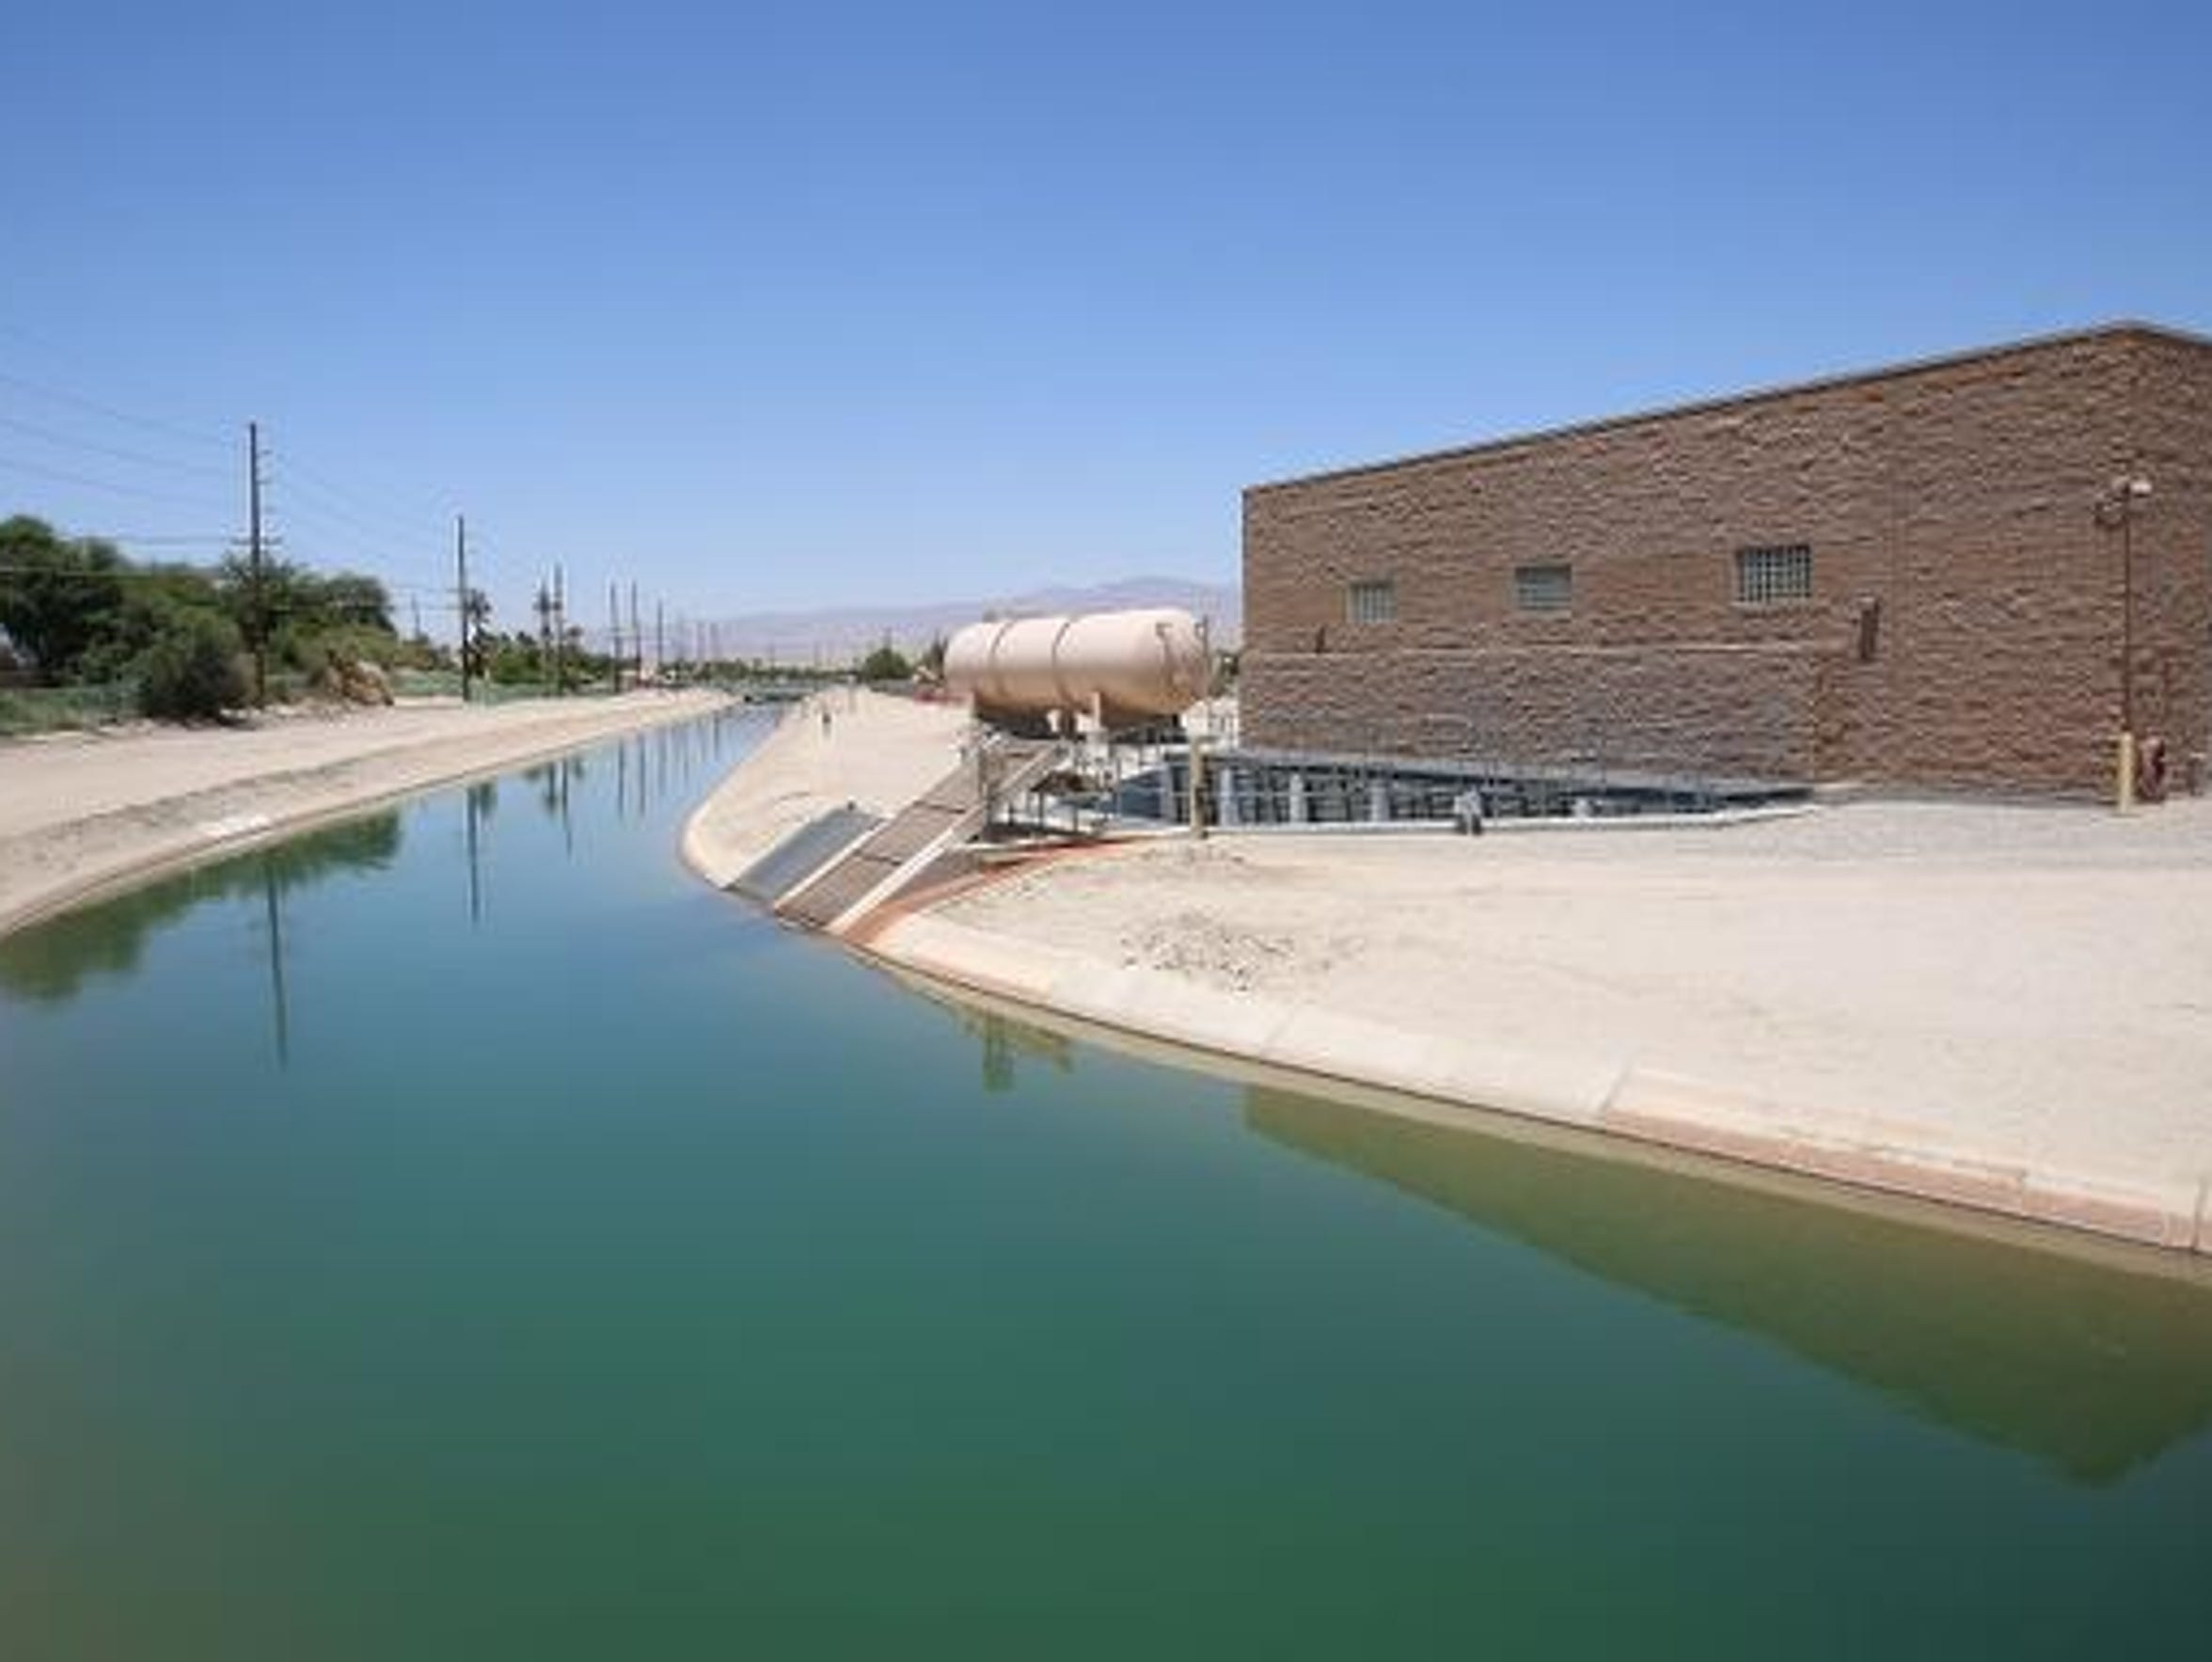 The Coachella Valley Water District's Mid-Valley Pipeline